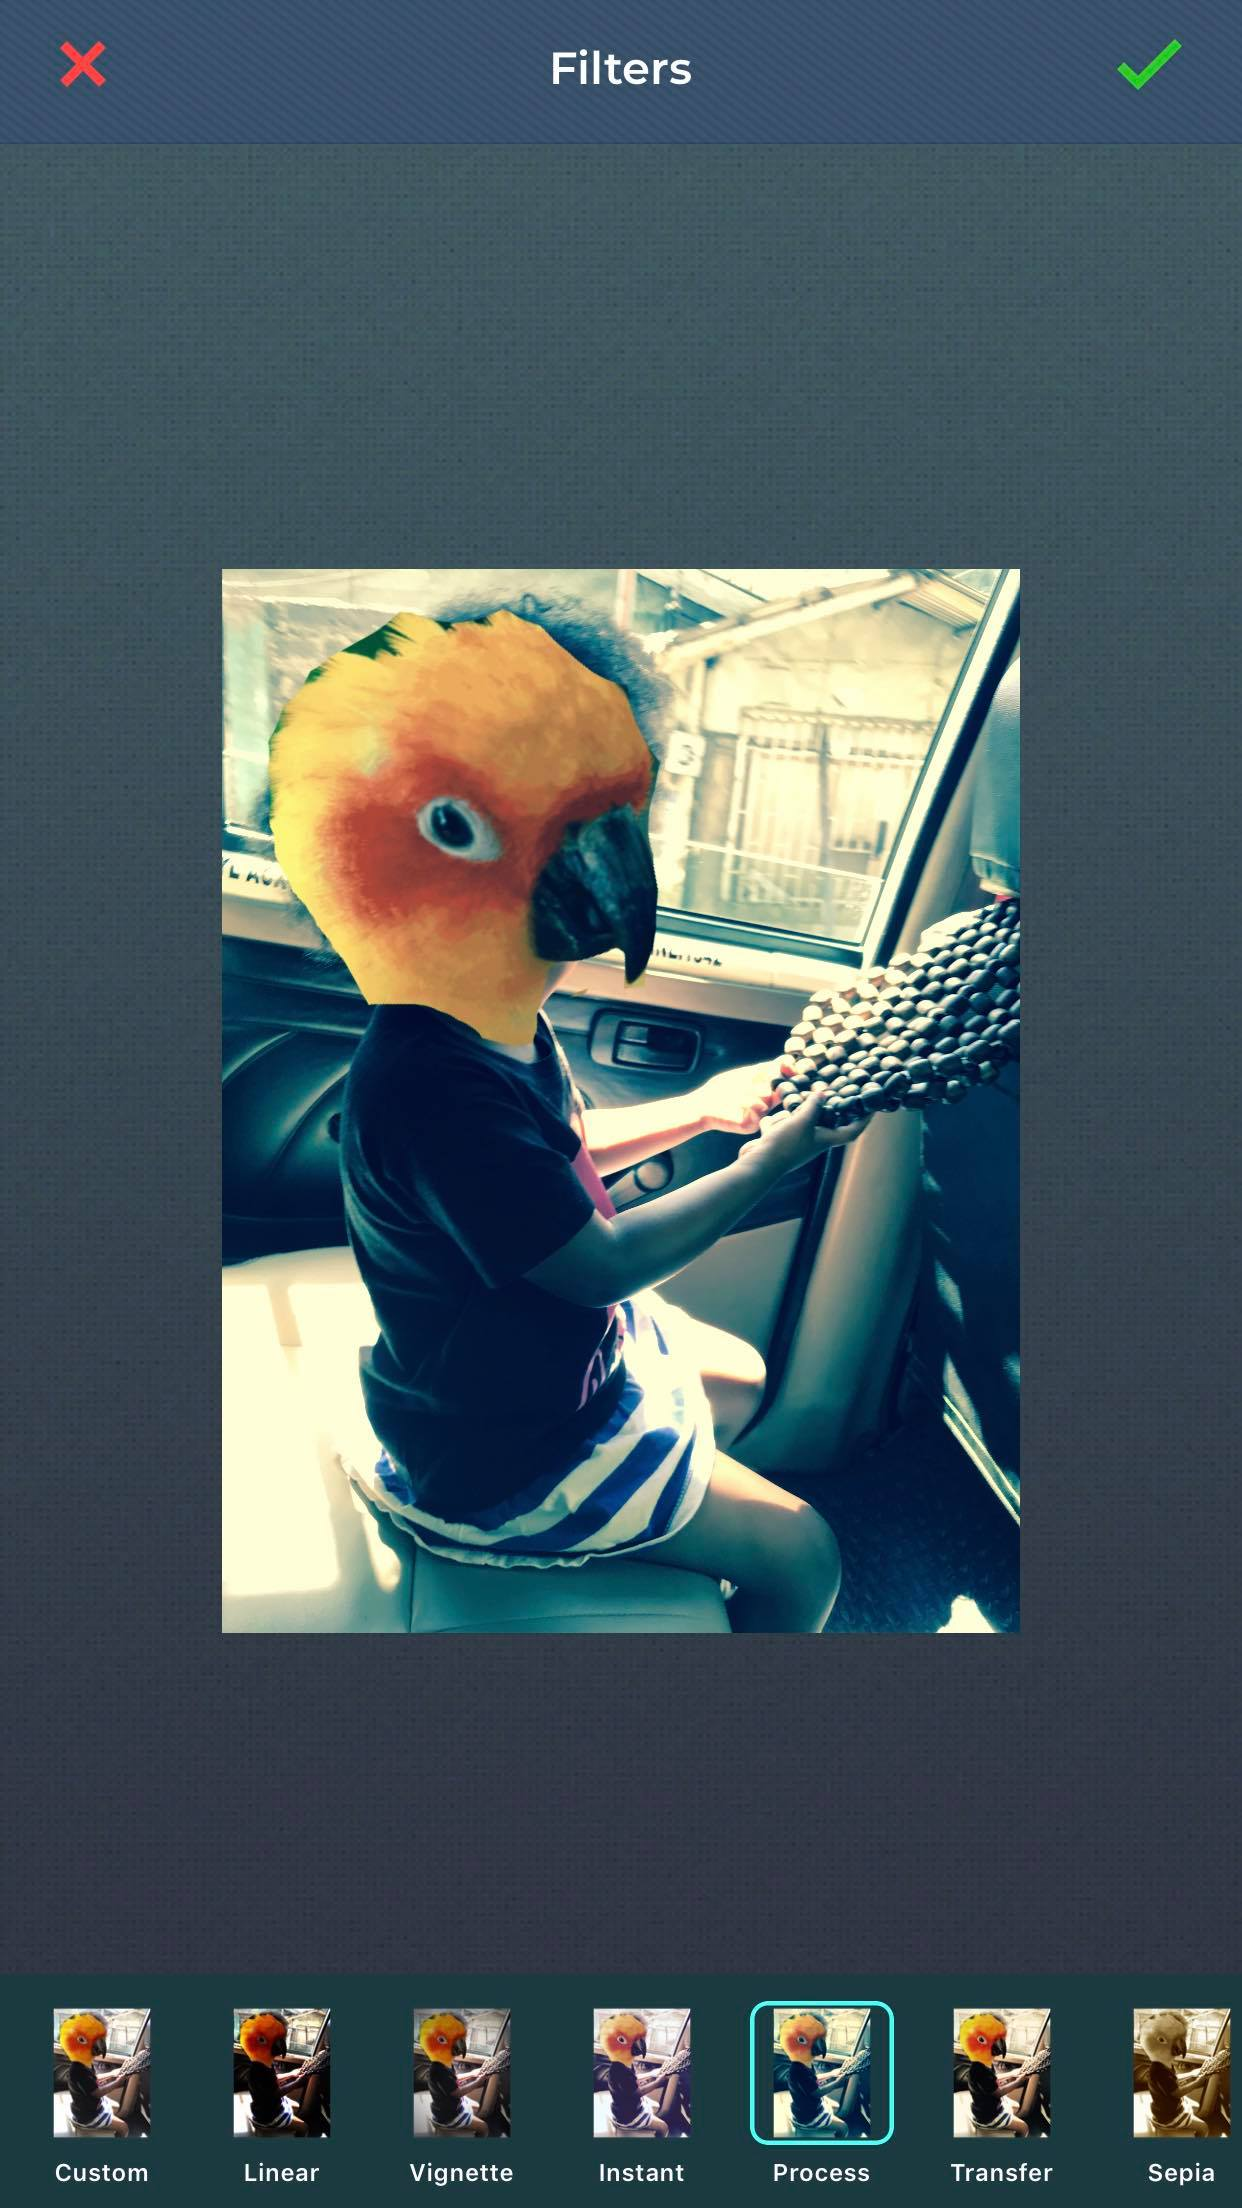 add filter named process on photo of girl with a bird for a head using cut paste photos app